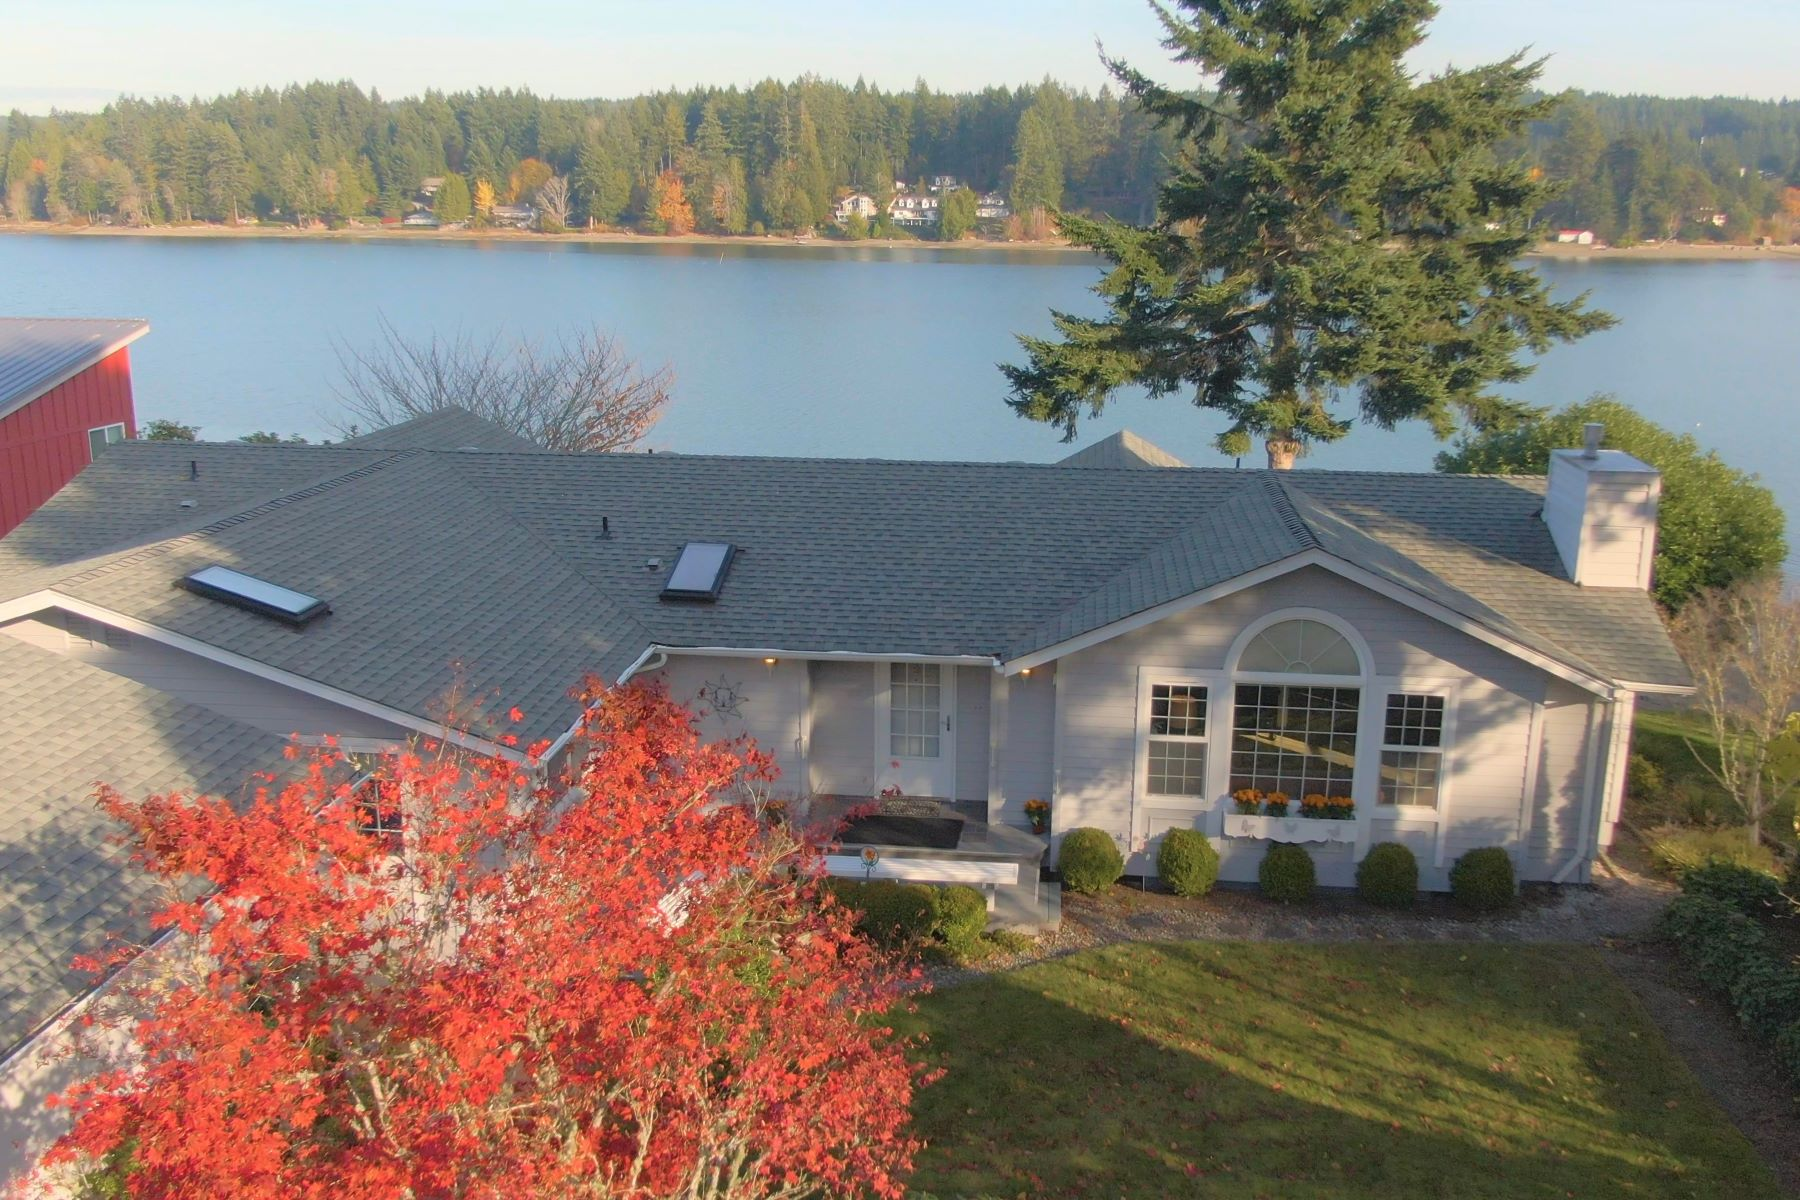 Single Family Homes for Sale at Waterfront Retreat Home 14703 Goodrich Drive NW Gig Harbor, Washington 98329 United States